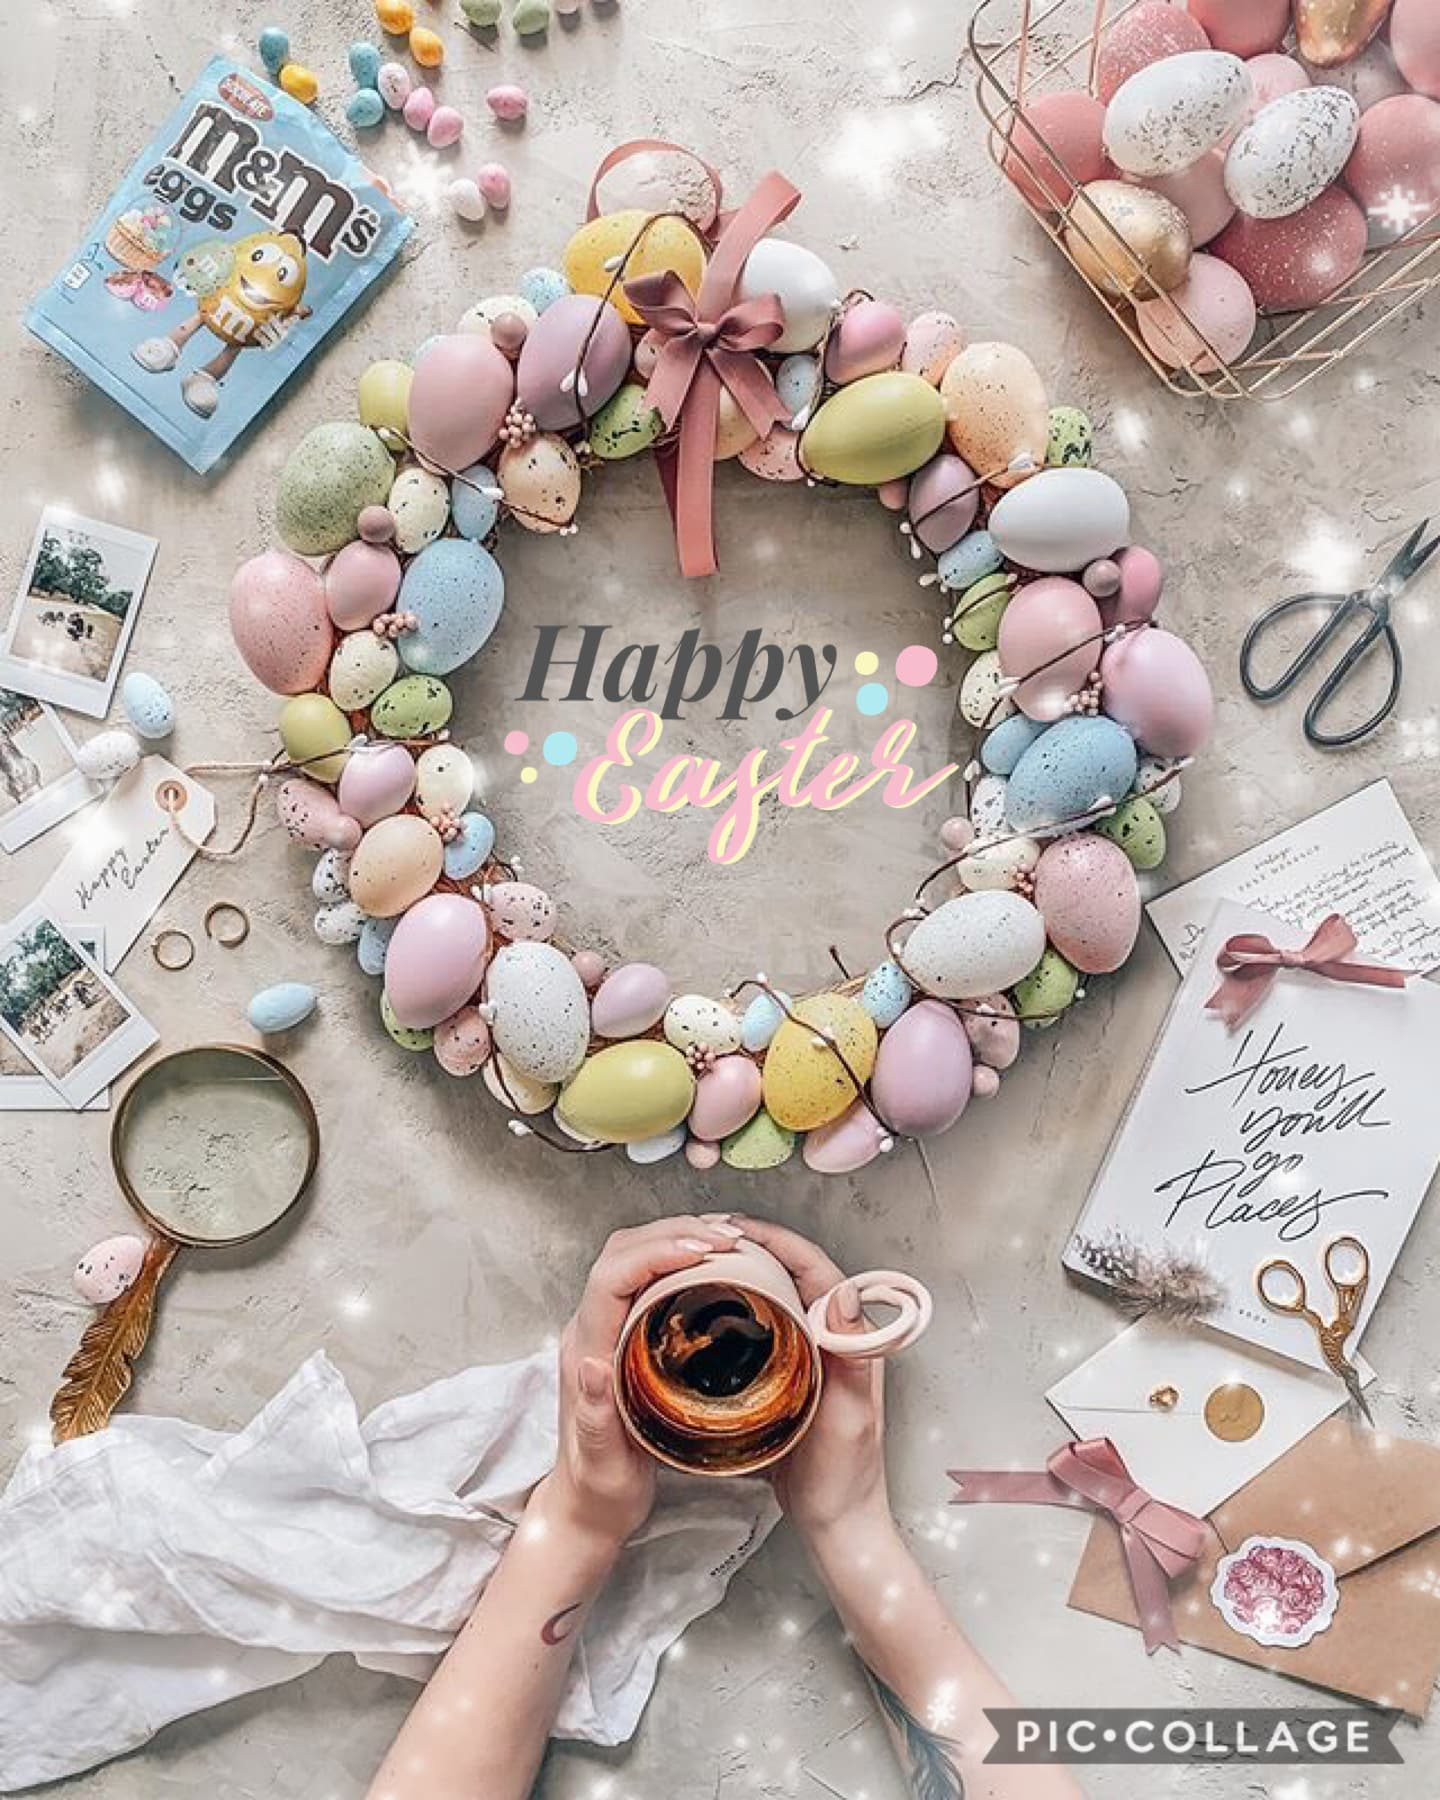 Happy Easter!🐣💛 I know it's been ages, but I'm trying to come back 😂 I've lost so much inspiration recently but hopefully I can stay as active as I can 😊 How have you all been?i know these are such uncertain times but on pic collage we can all stand toget